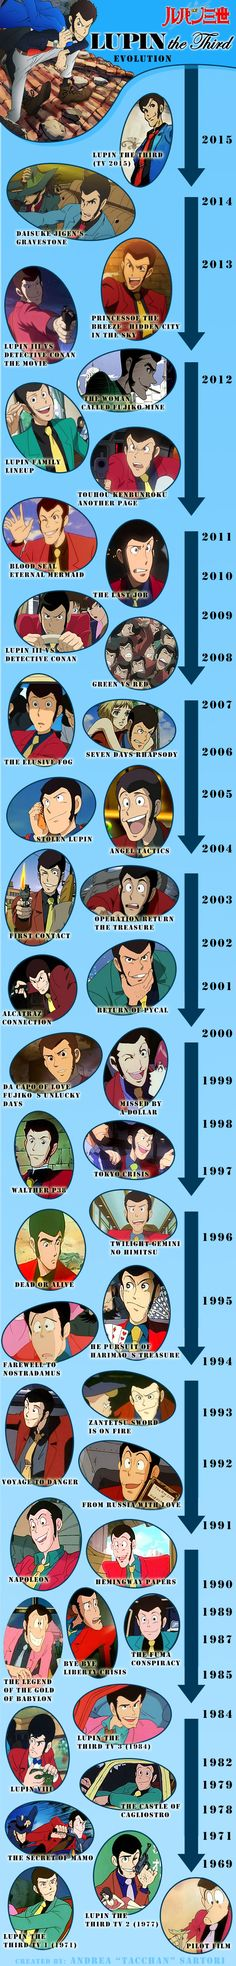 Lupin III - Look evolution from 1969 to 2015 I grew up watching castle of caglio. Lupin III - Look Old Anime, Manga Anime, Me Me Me Anime, Anime Love, Peach Tumblr, Lupin The Third, Gundam Wallpapers, Morning Cartoon, Movie Magazine